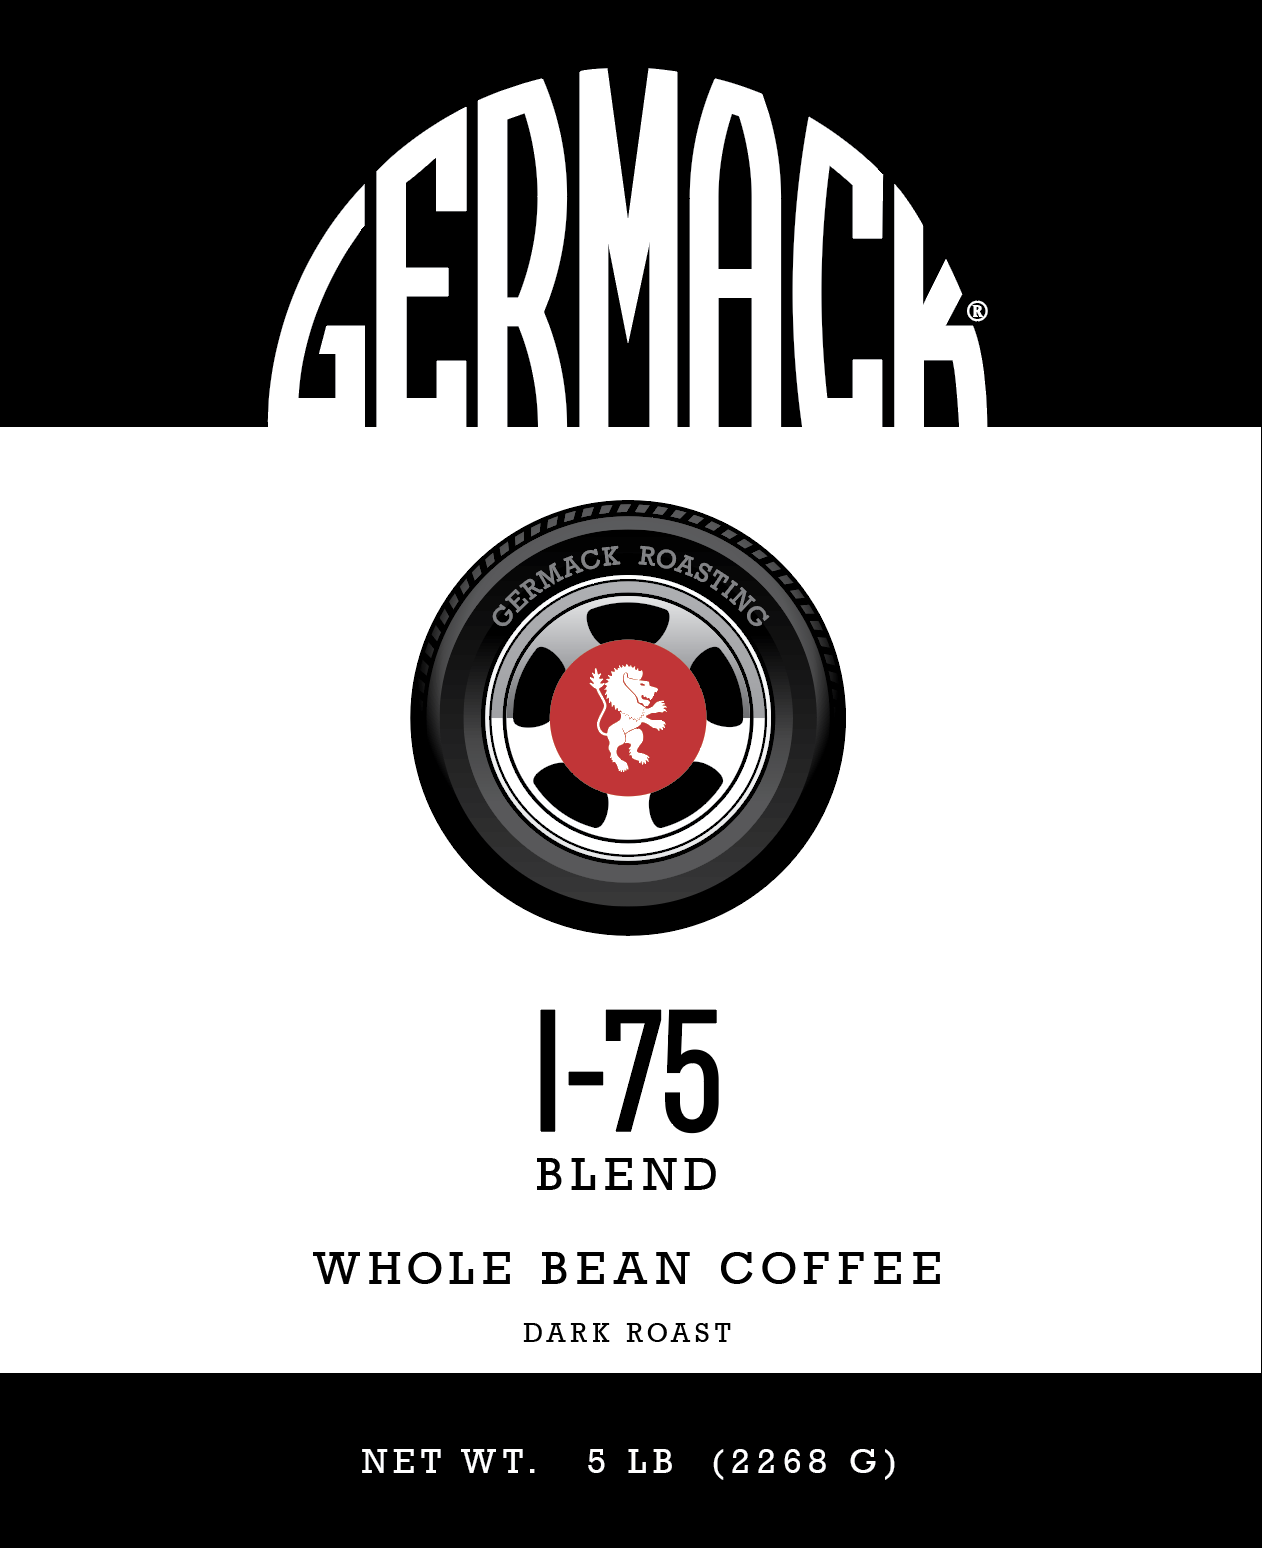 Germack Coffee Blend (5 LB.) - I-75